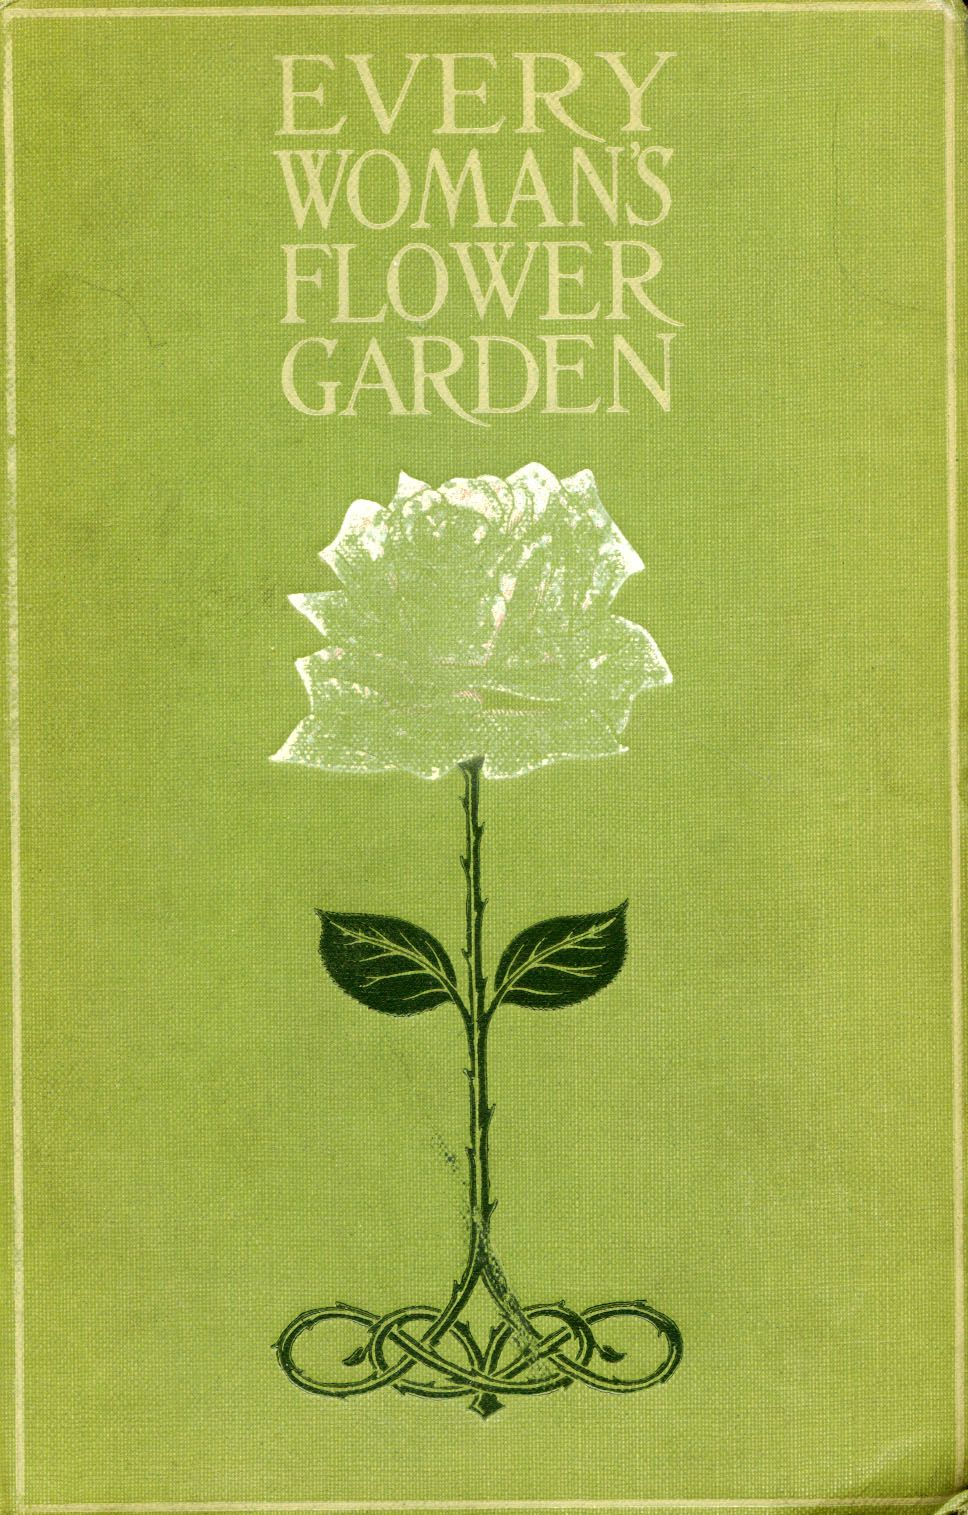 Every Womans Flower Garden Vintage Book Cover Art Book Cover Art Vintage Book Covers Beautiful Book Covers